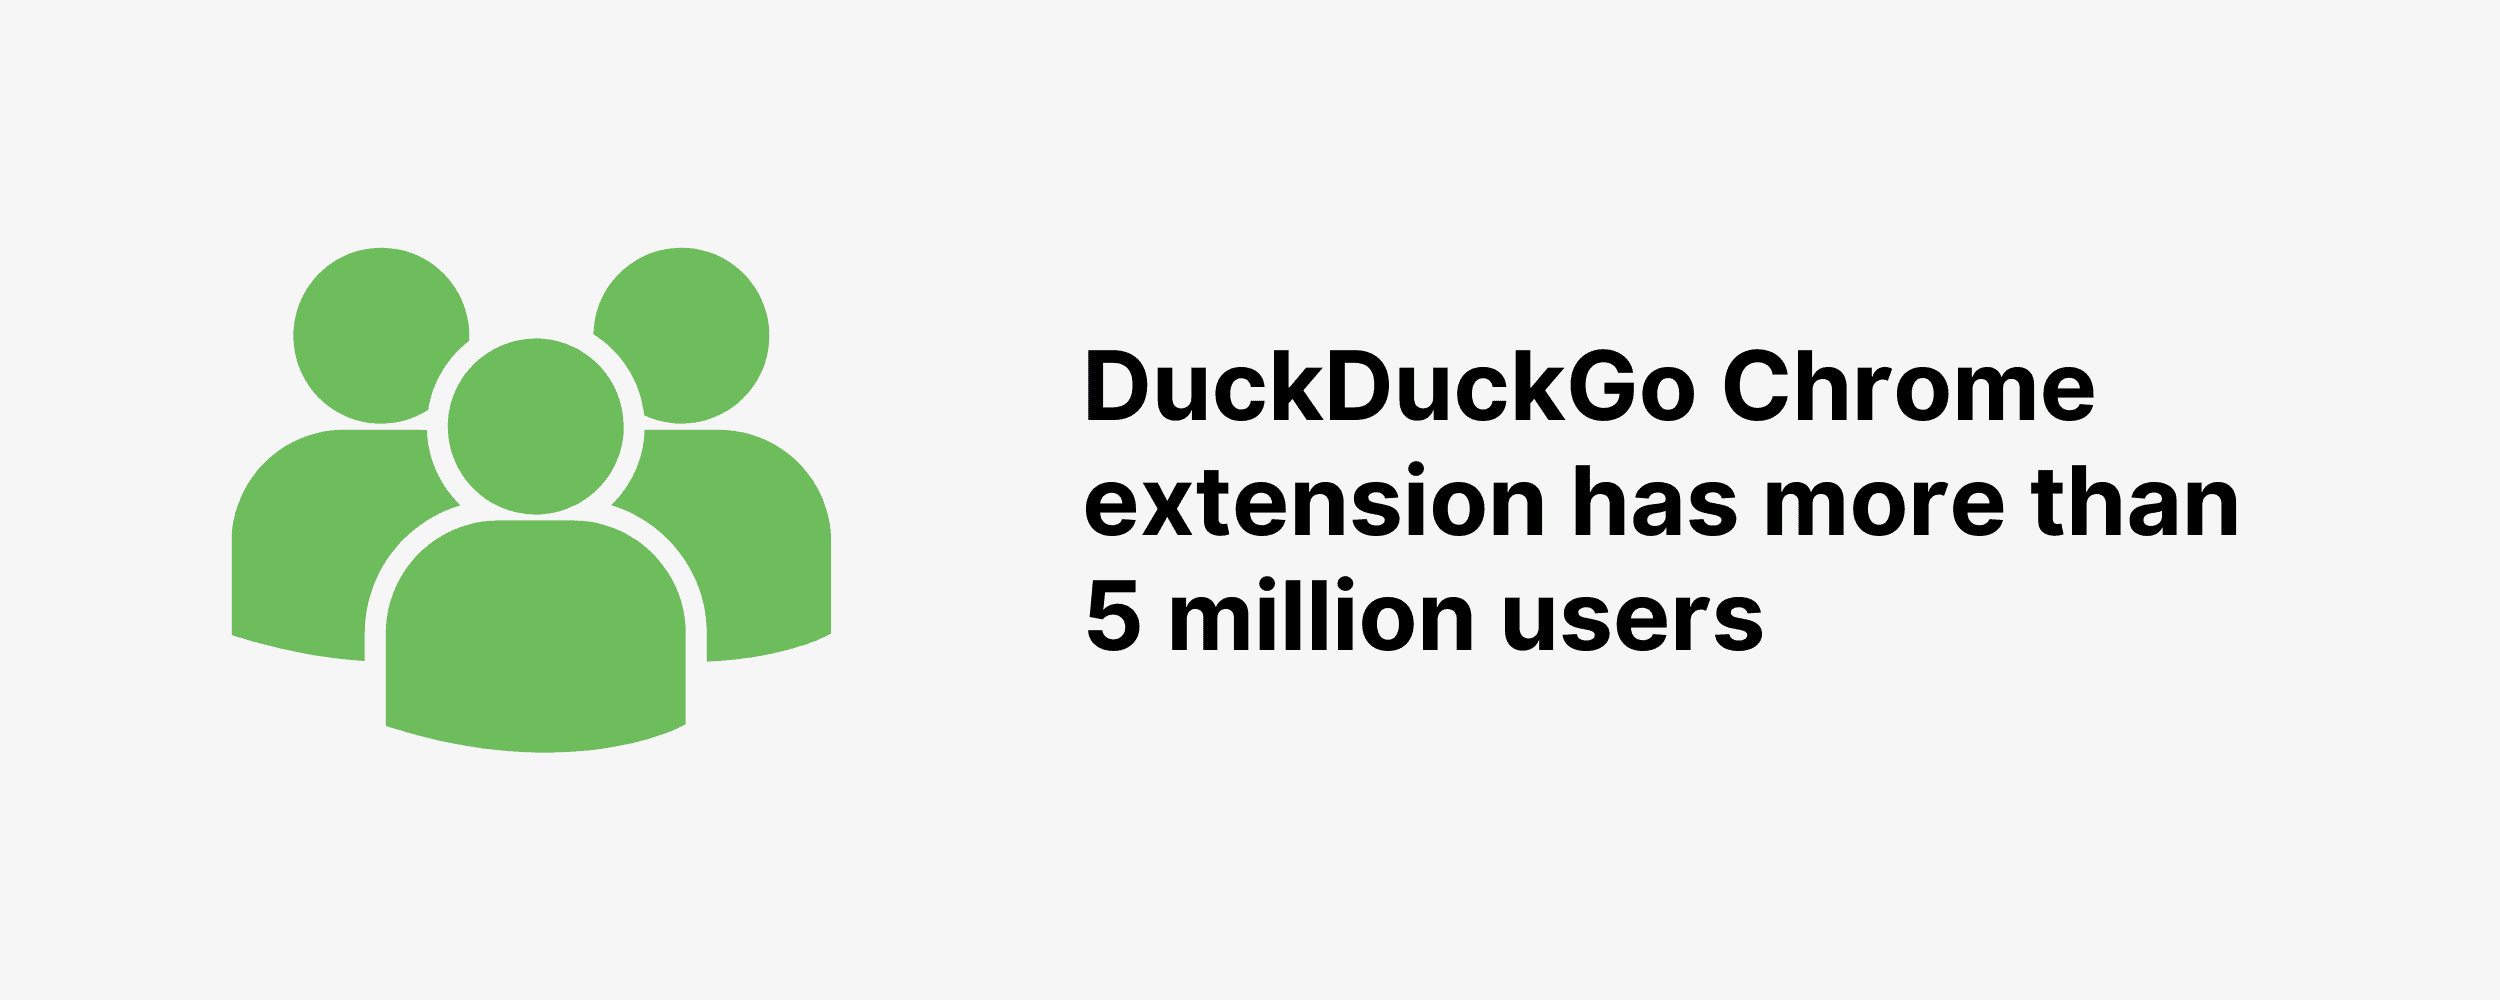 DuckDuckGo Chrome extension has more than 5 million users